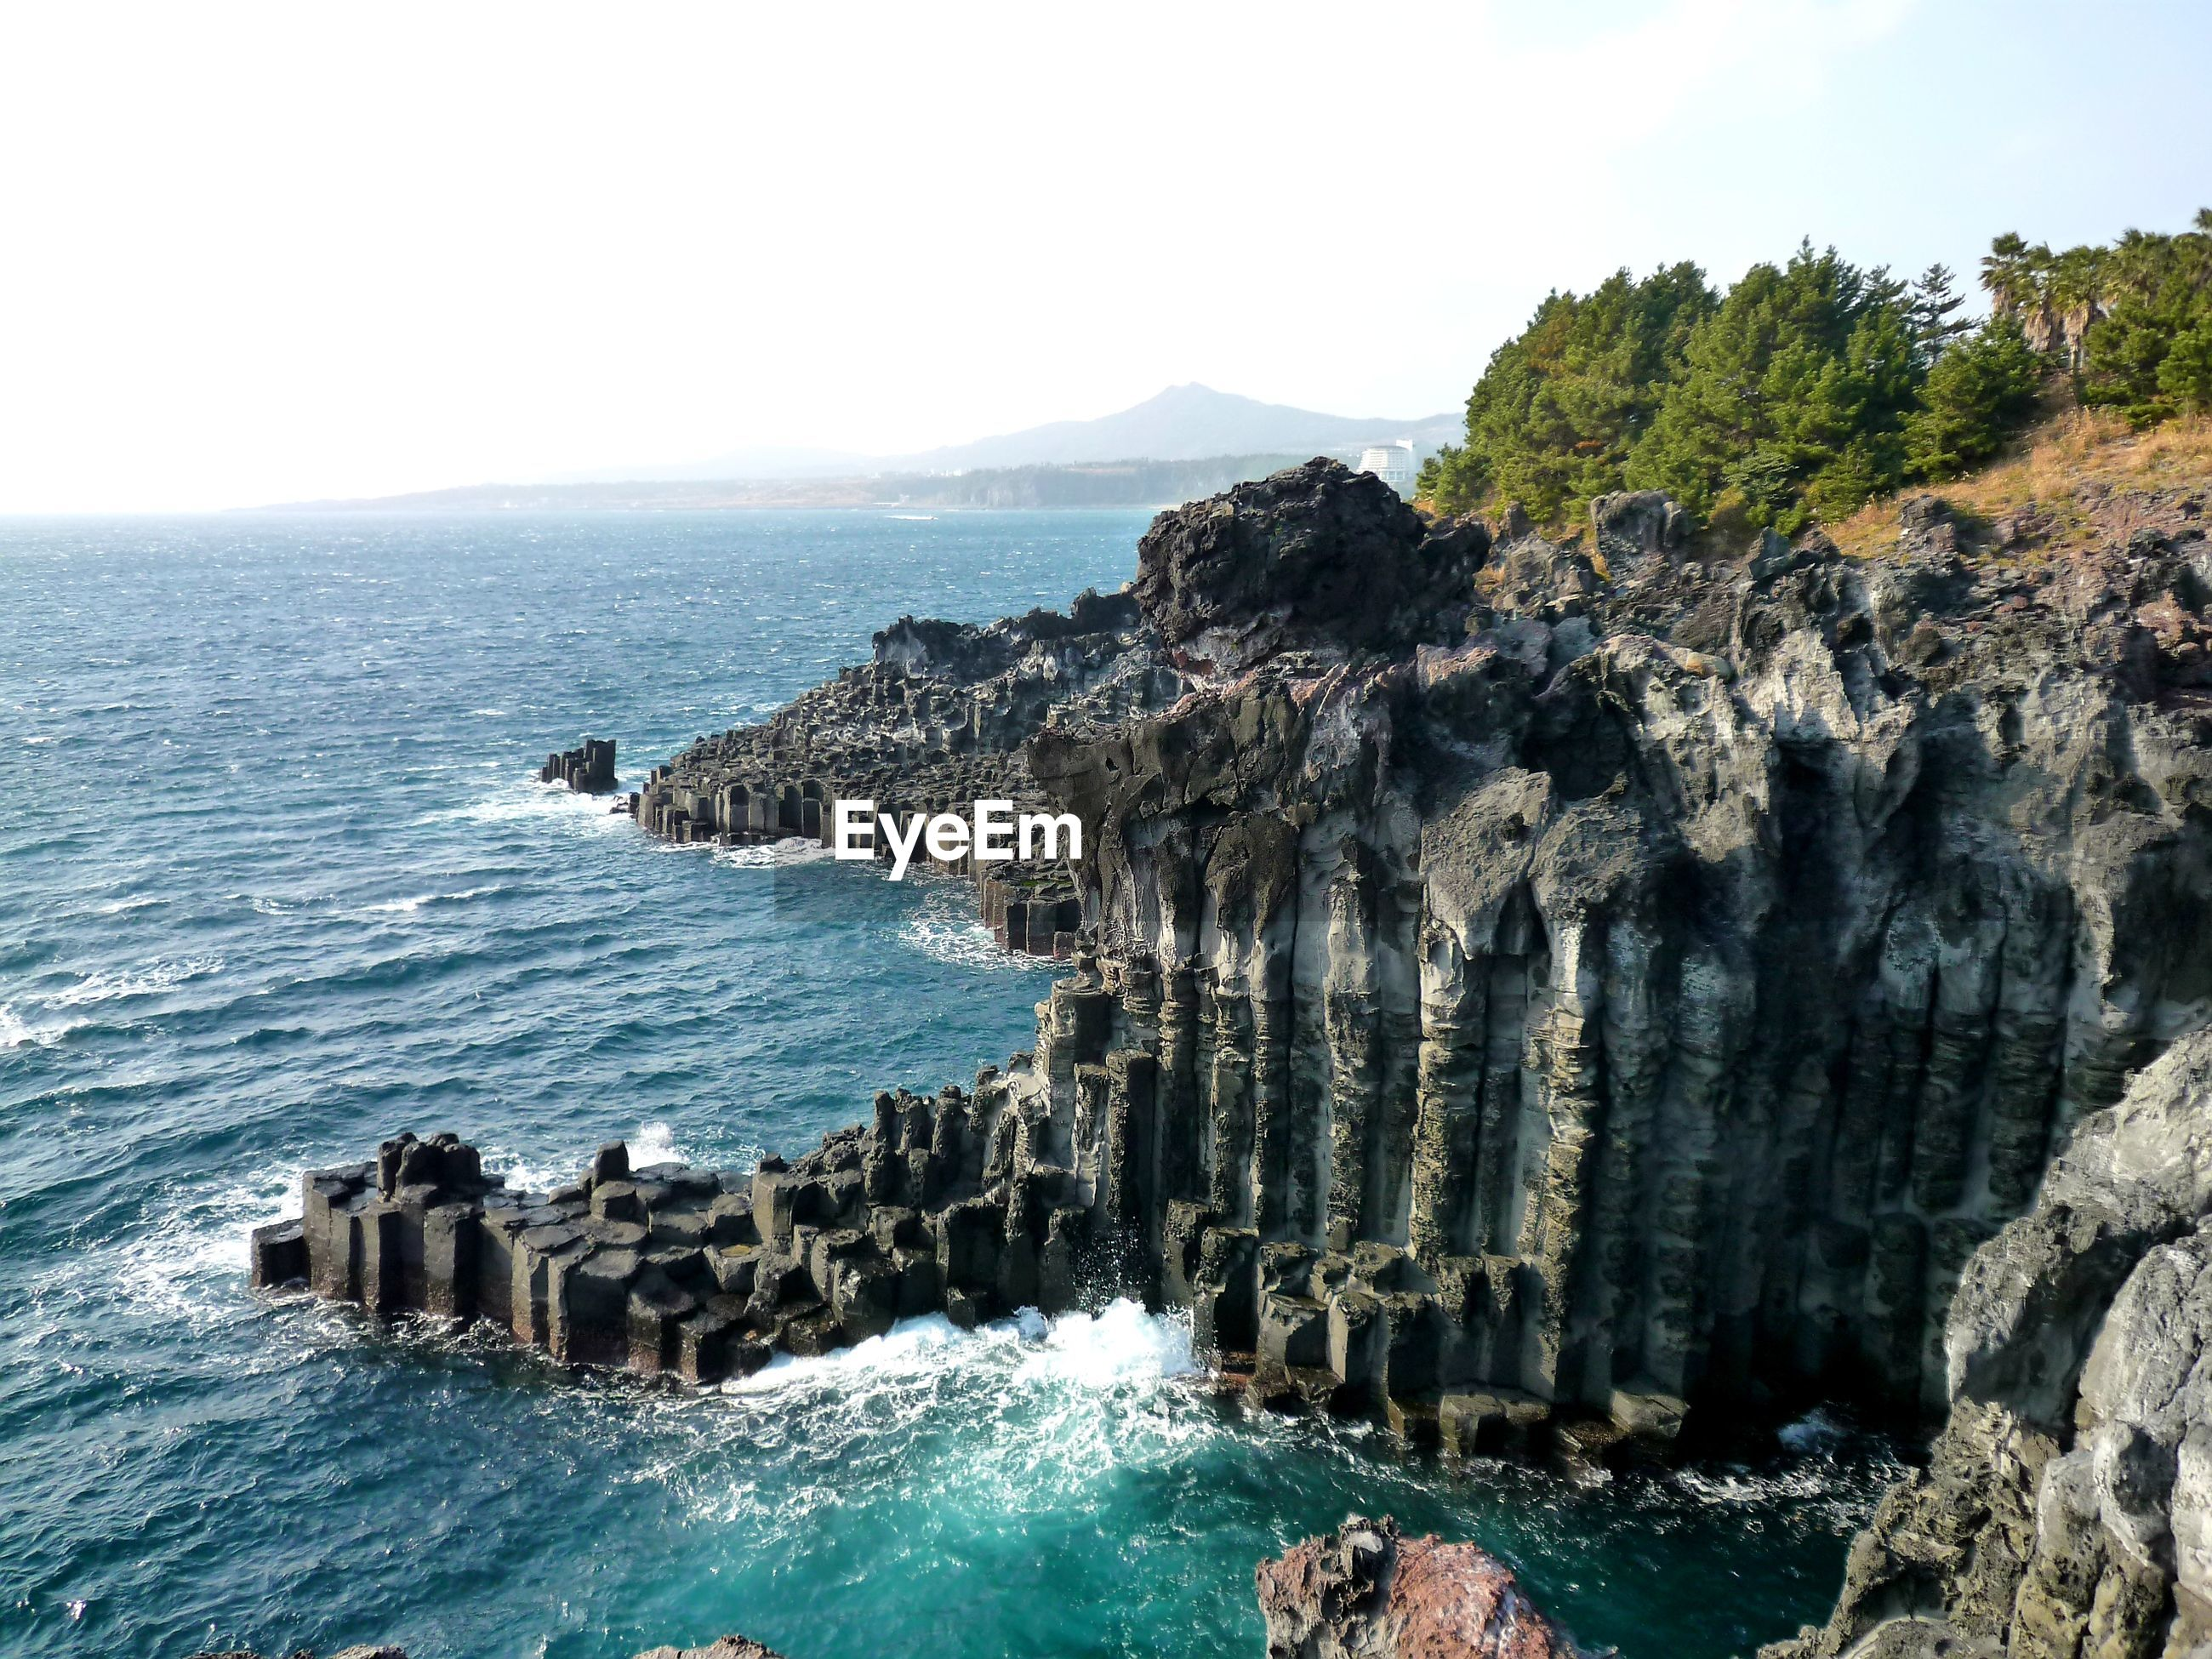 PANORAMIC VIEW OF SEA AND ROCK FORMATION AGAINST SKY